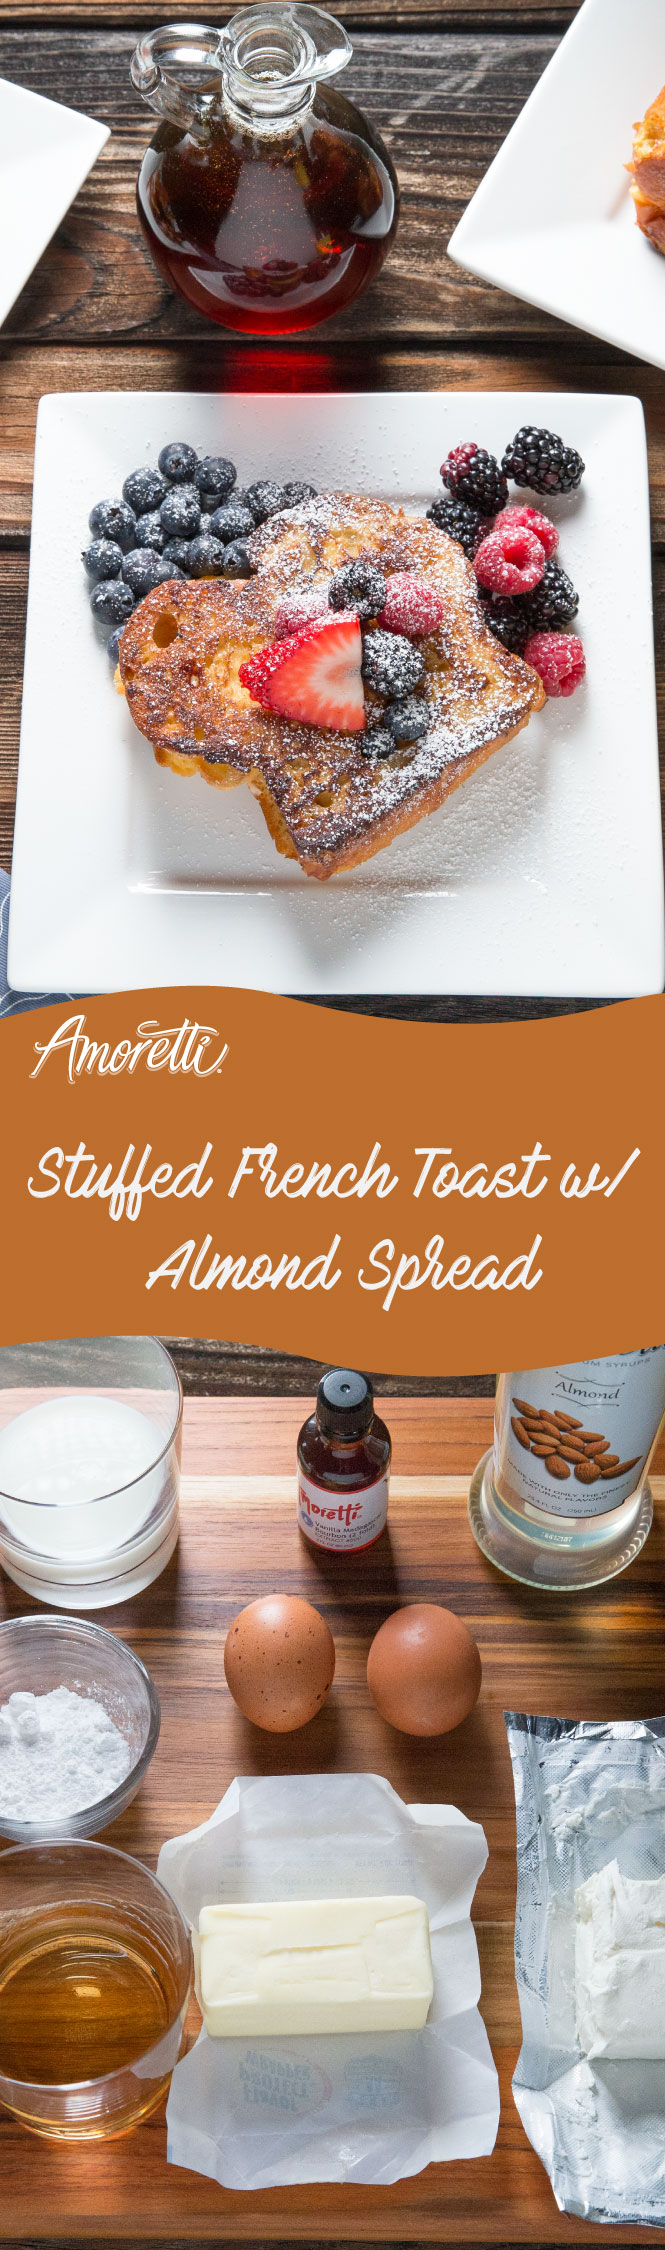 Brunch starts with a delicious french toast stuffed with the sweet flavor of almonds!